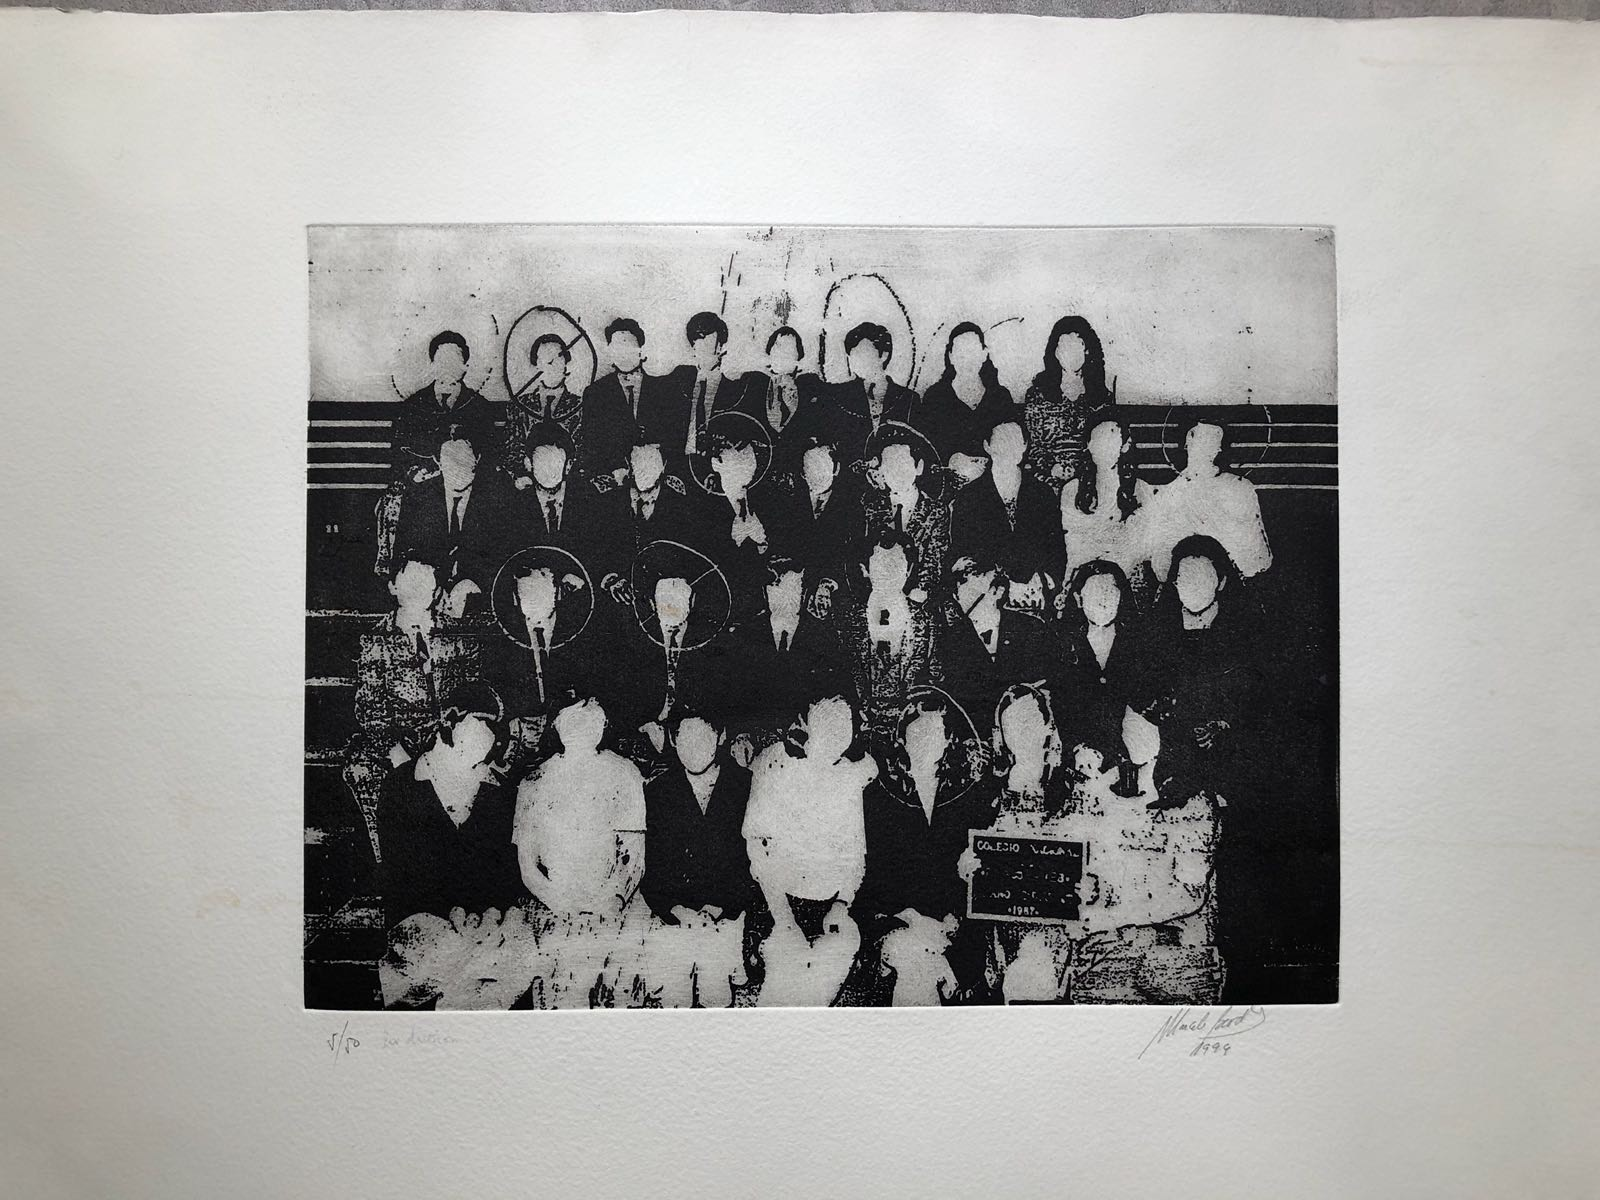 Good Memory, The class. 1997. Engraving